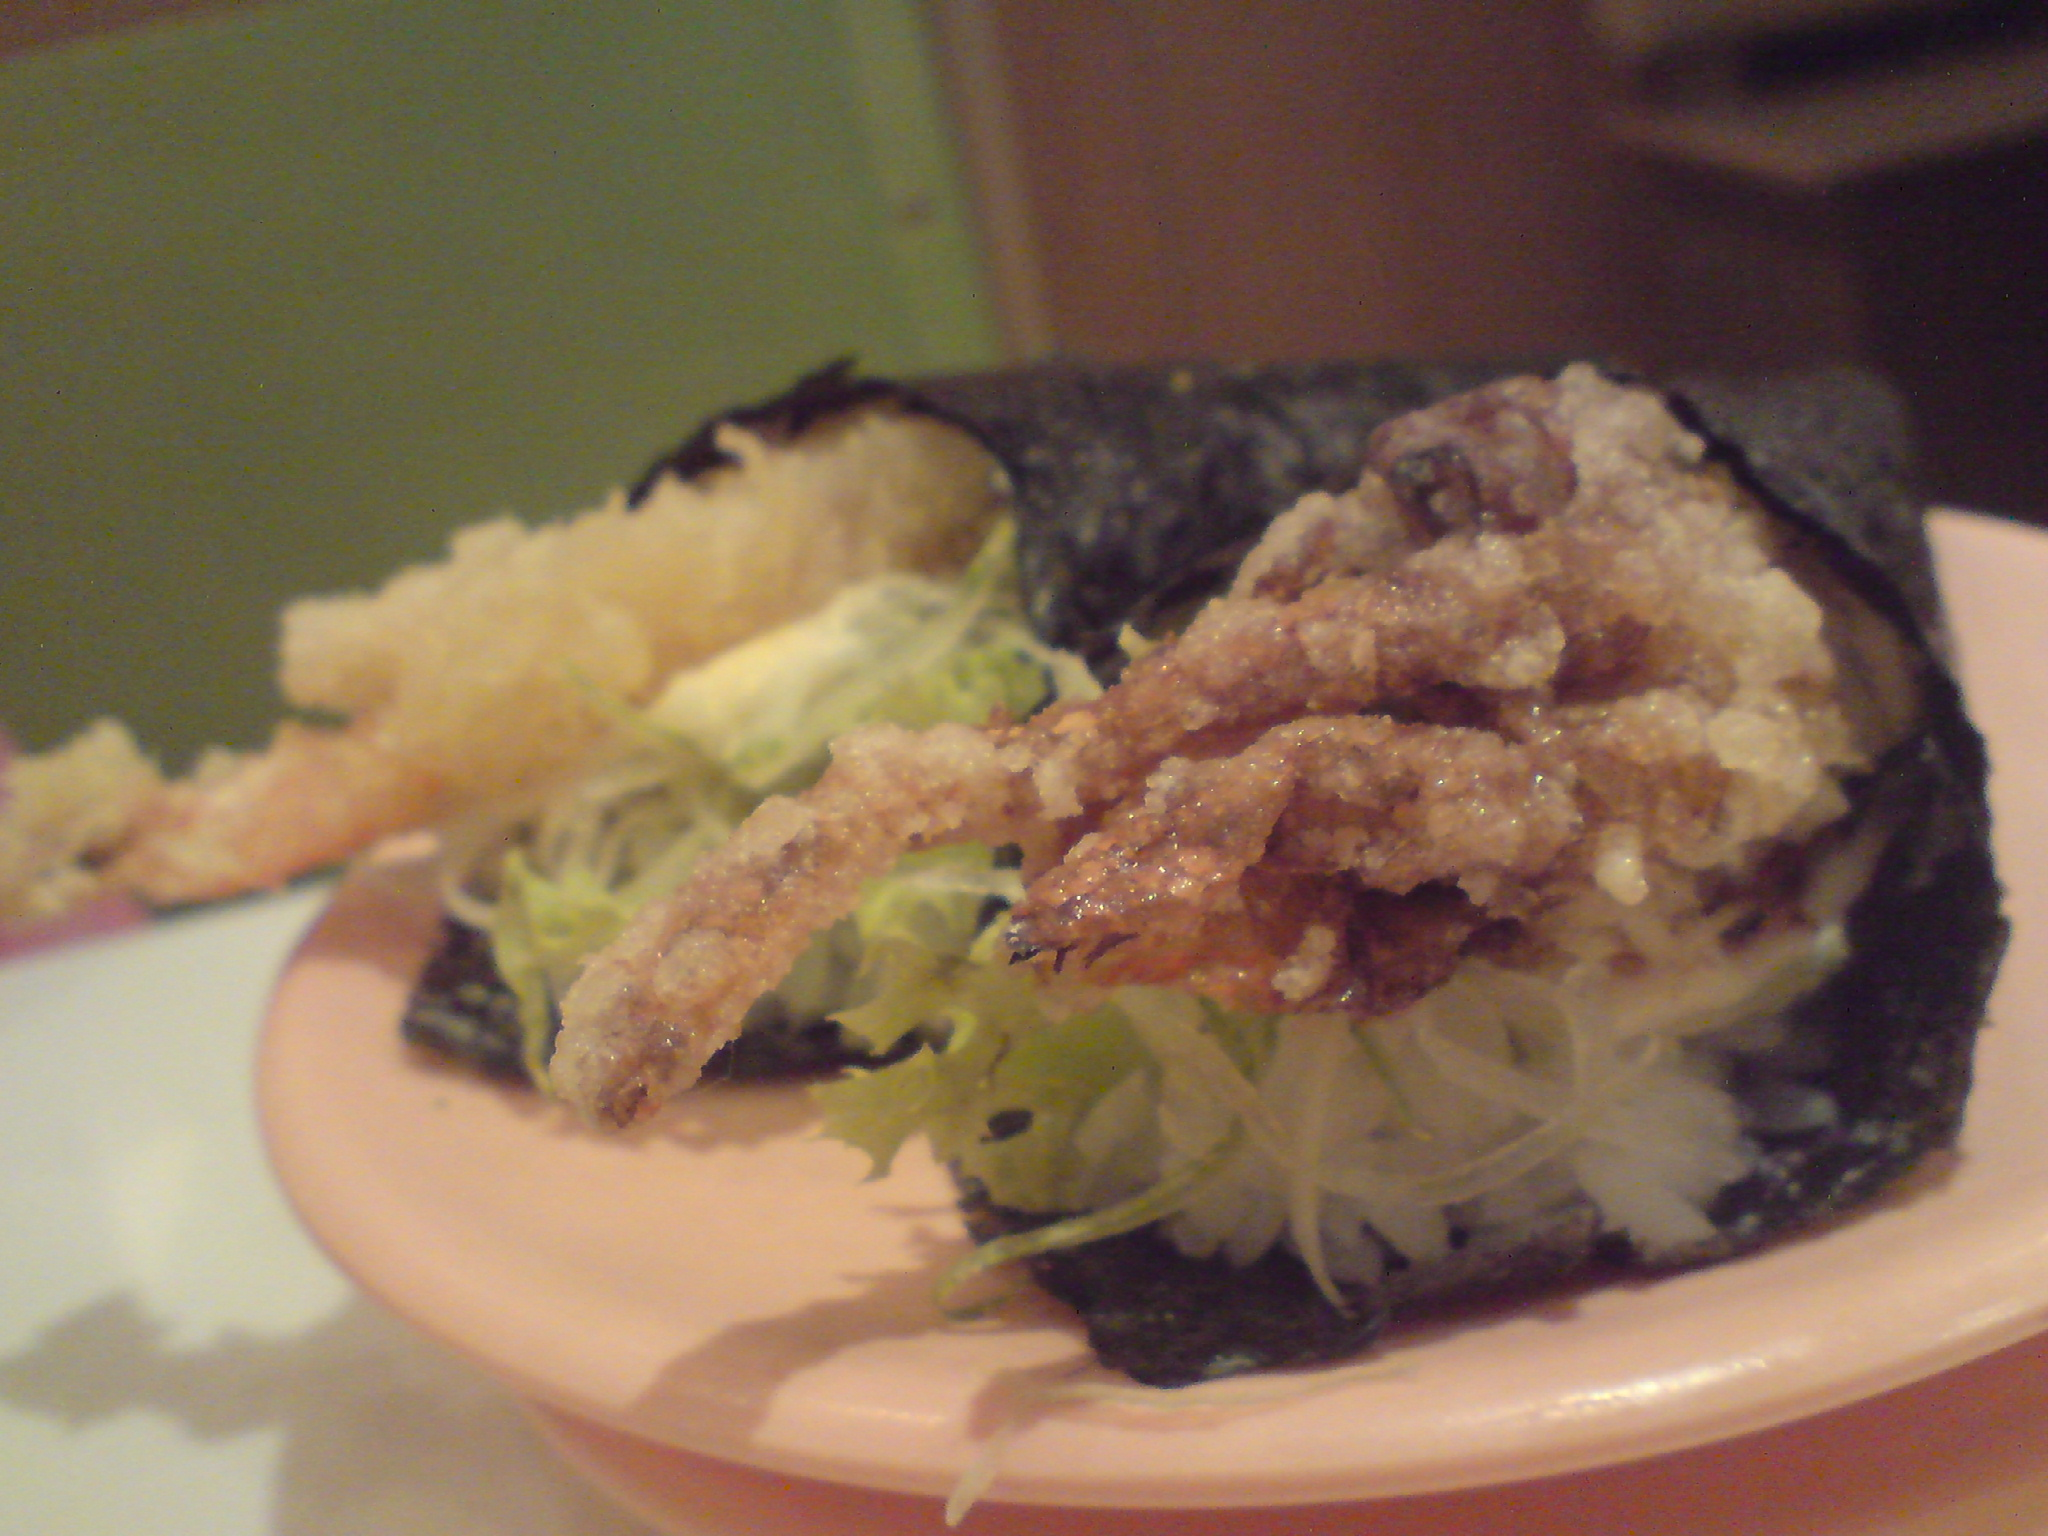 Handrolls - softshell crab, fried prawn fritter